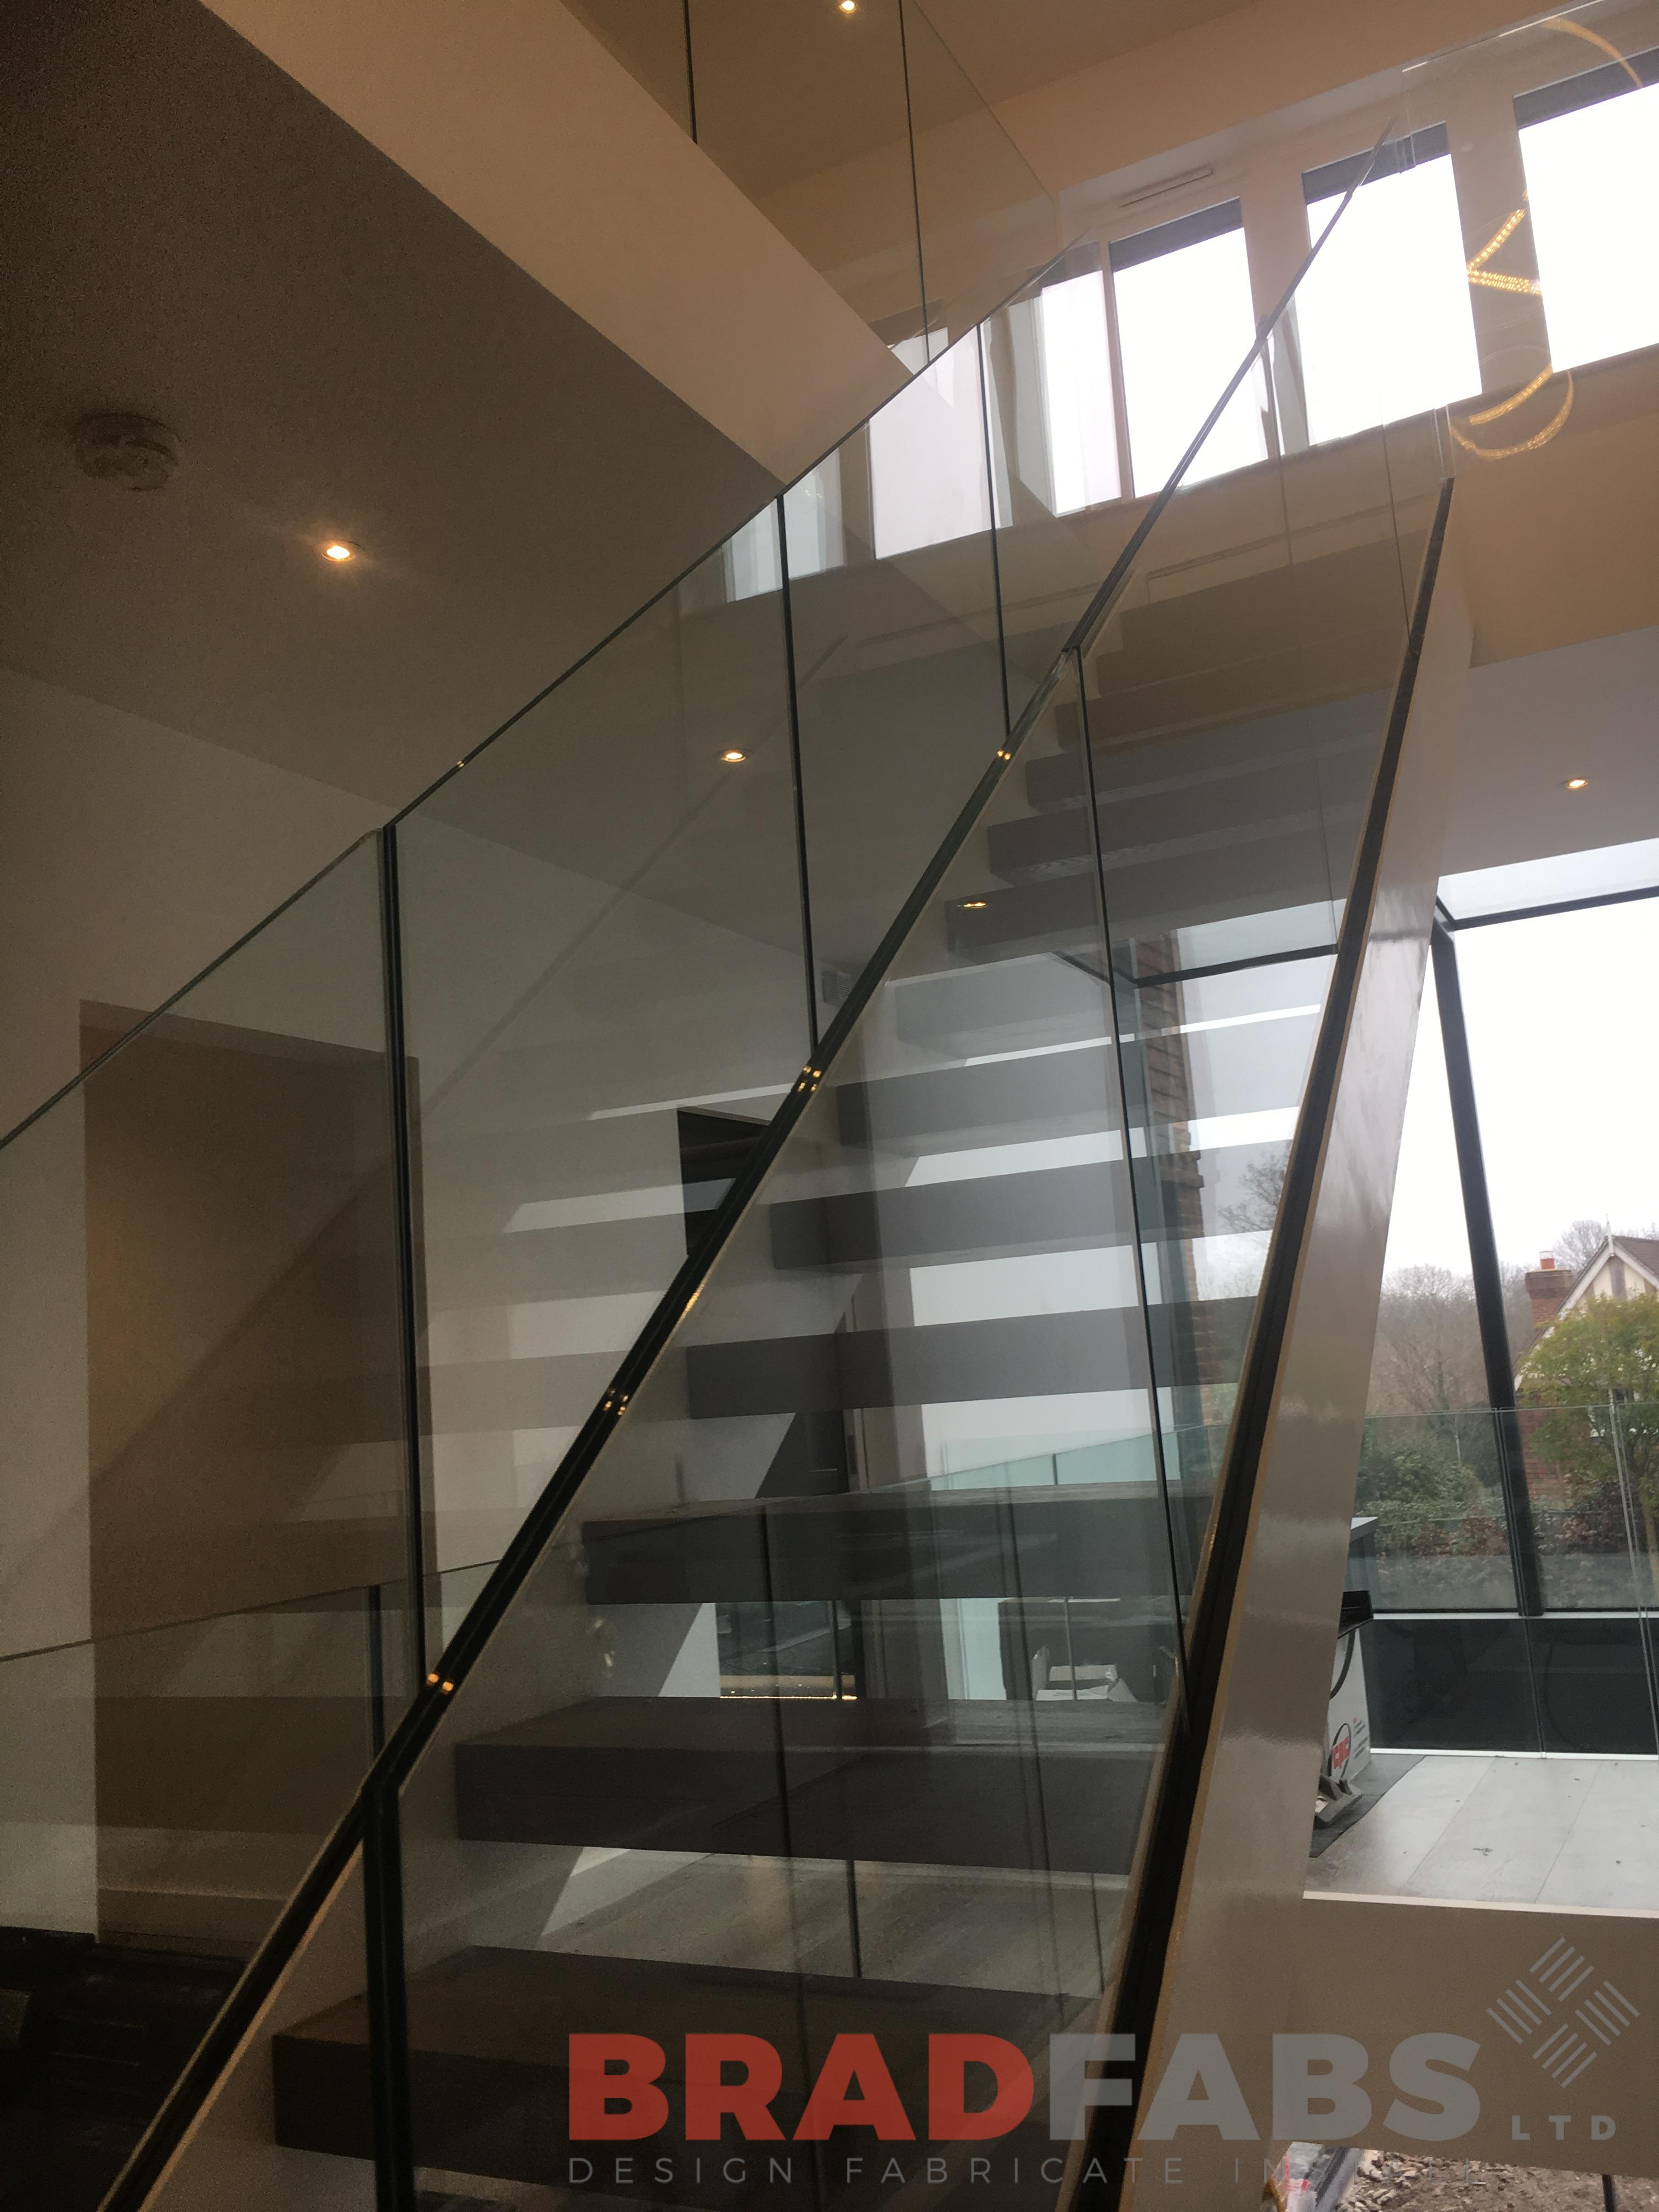 Steel Fabricators Of Balconies Staircases Straight Staircases